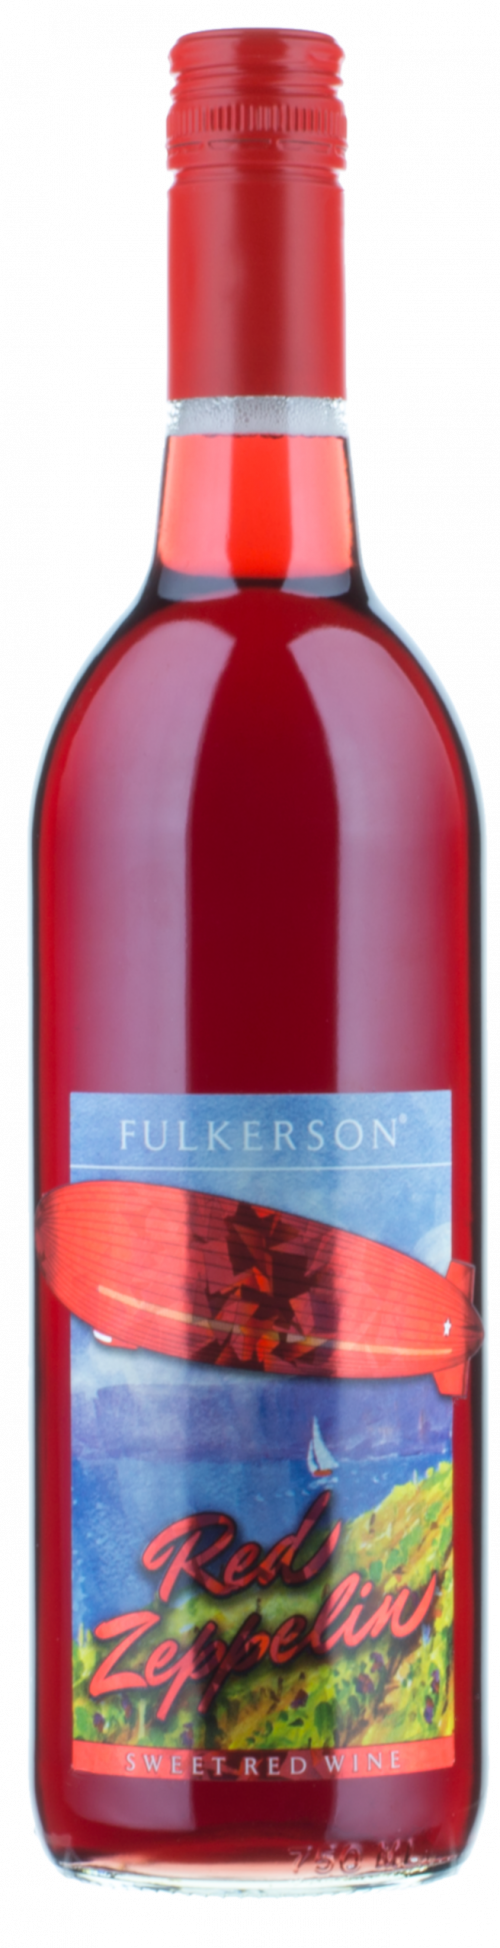 Fulkerson Red Zeppelin 750ml NV